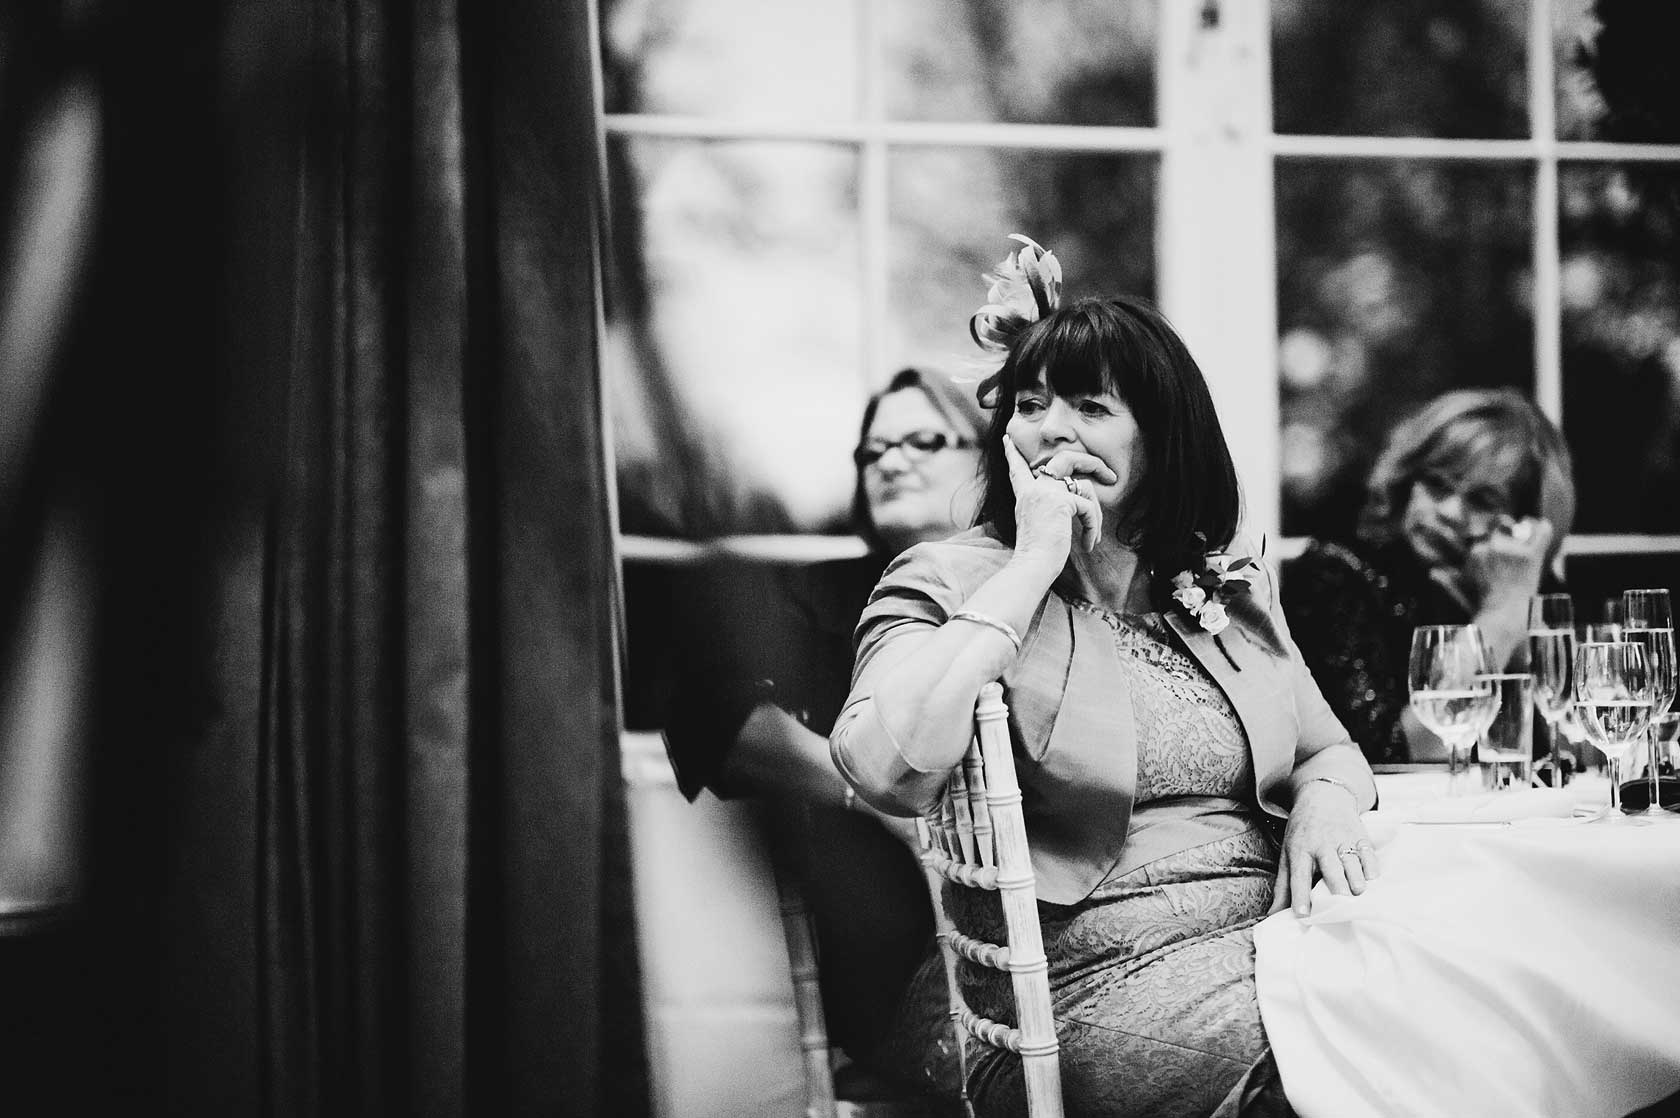 Reportage Wedding Photography in Bedfordshire